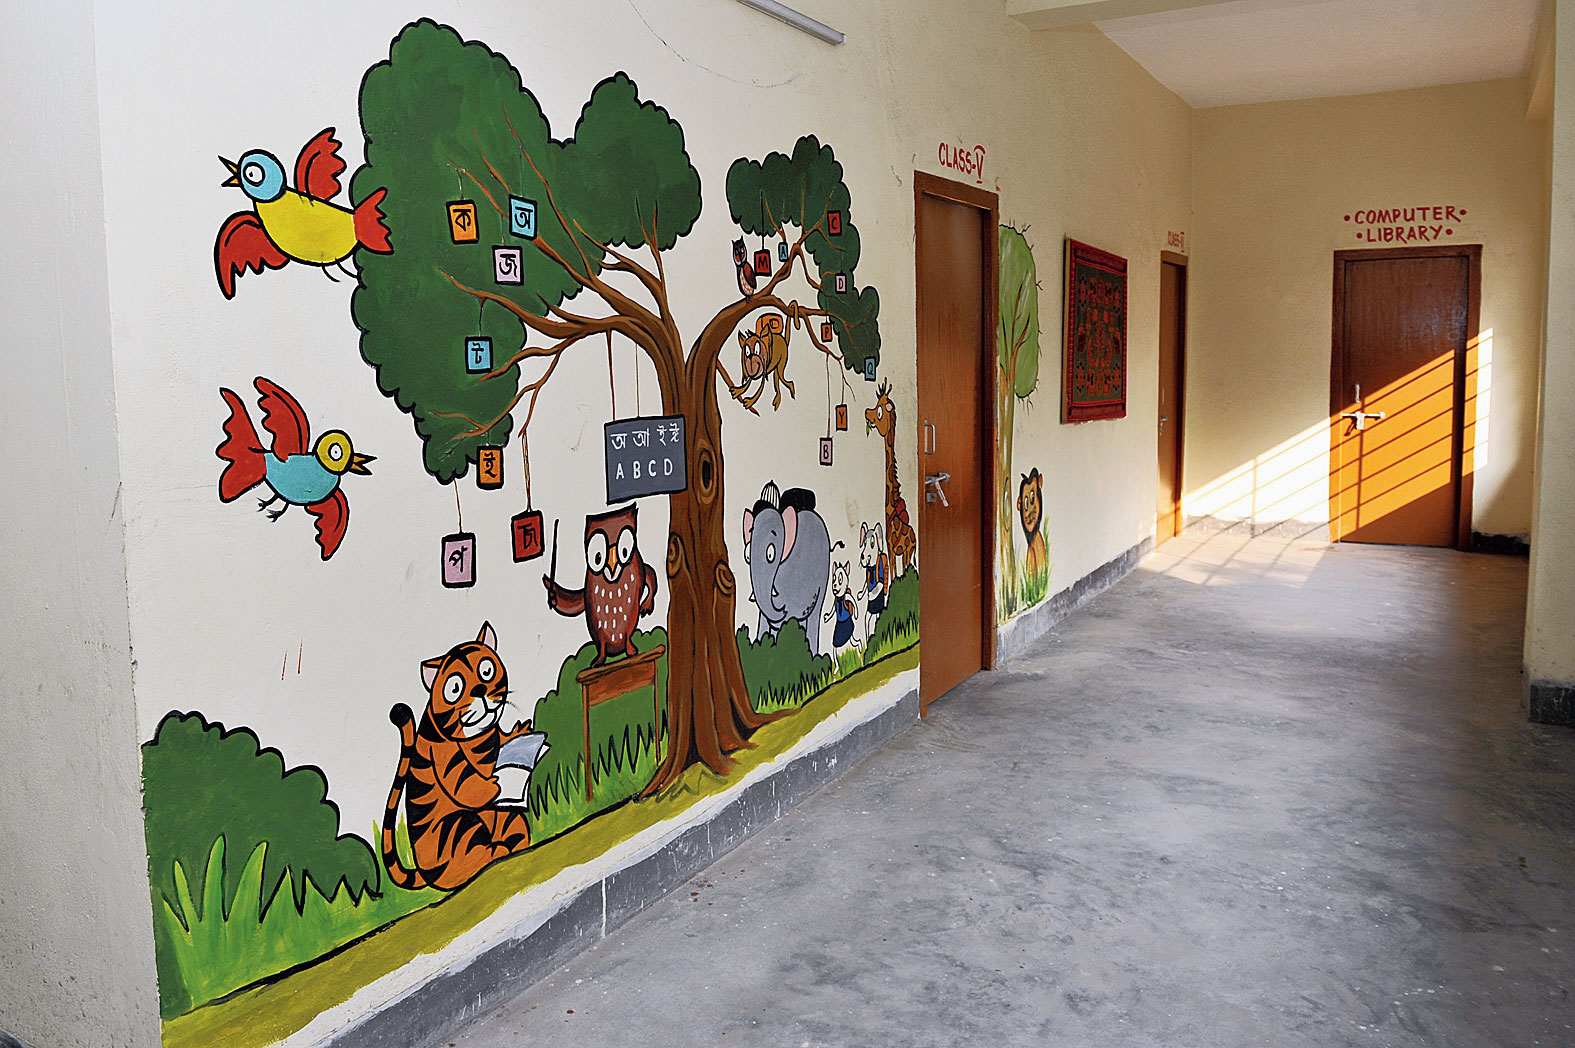 A painted wall in a corridor of the school.